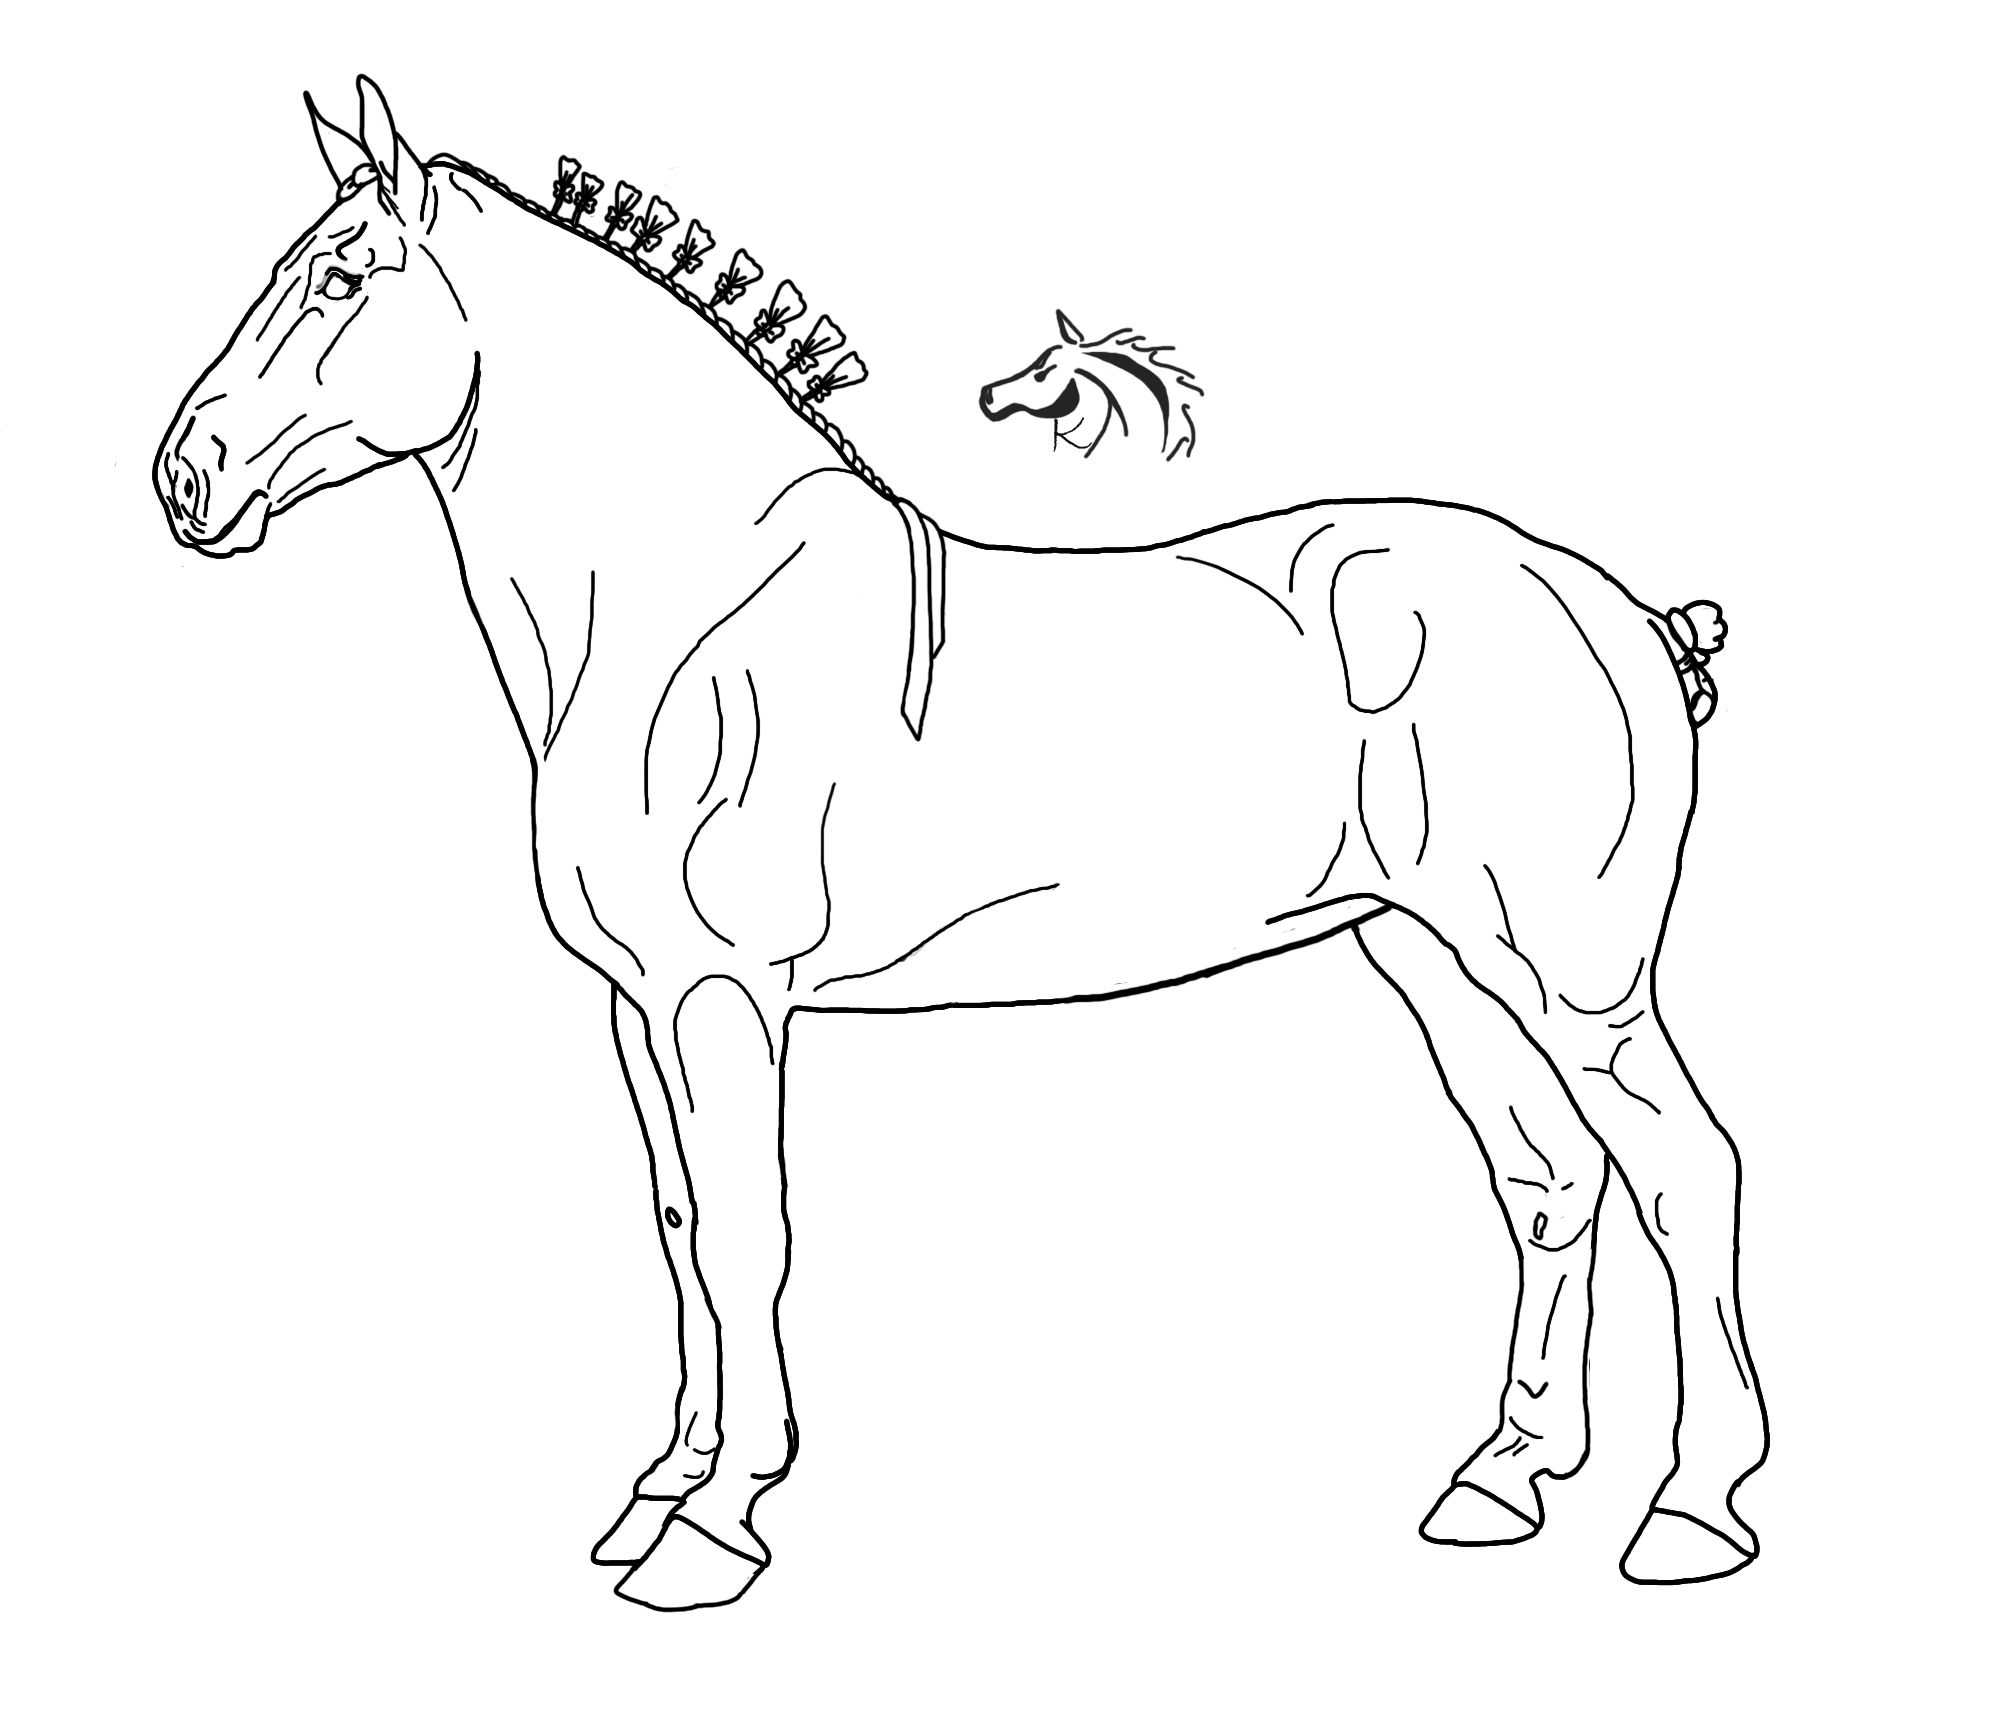 Draft Horse Lineart By Xkissofcreation On Deviantart Horse Sketch Horse Art Drawing Horse Art